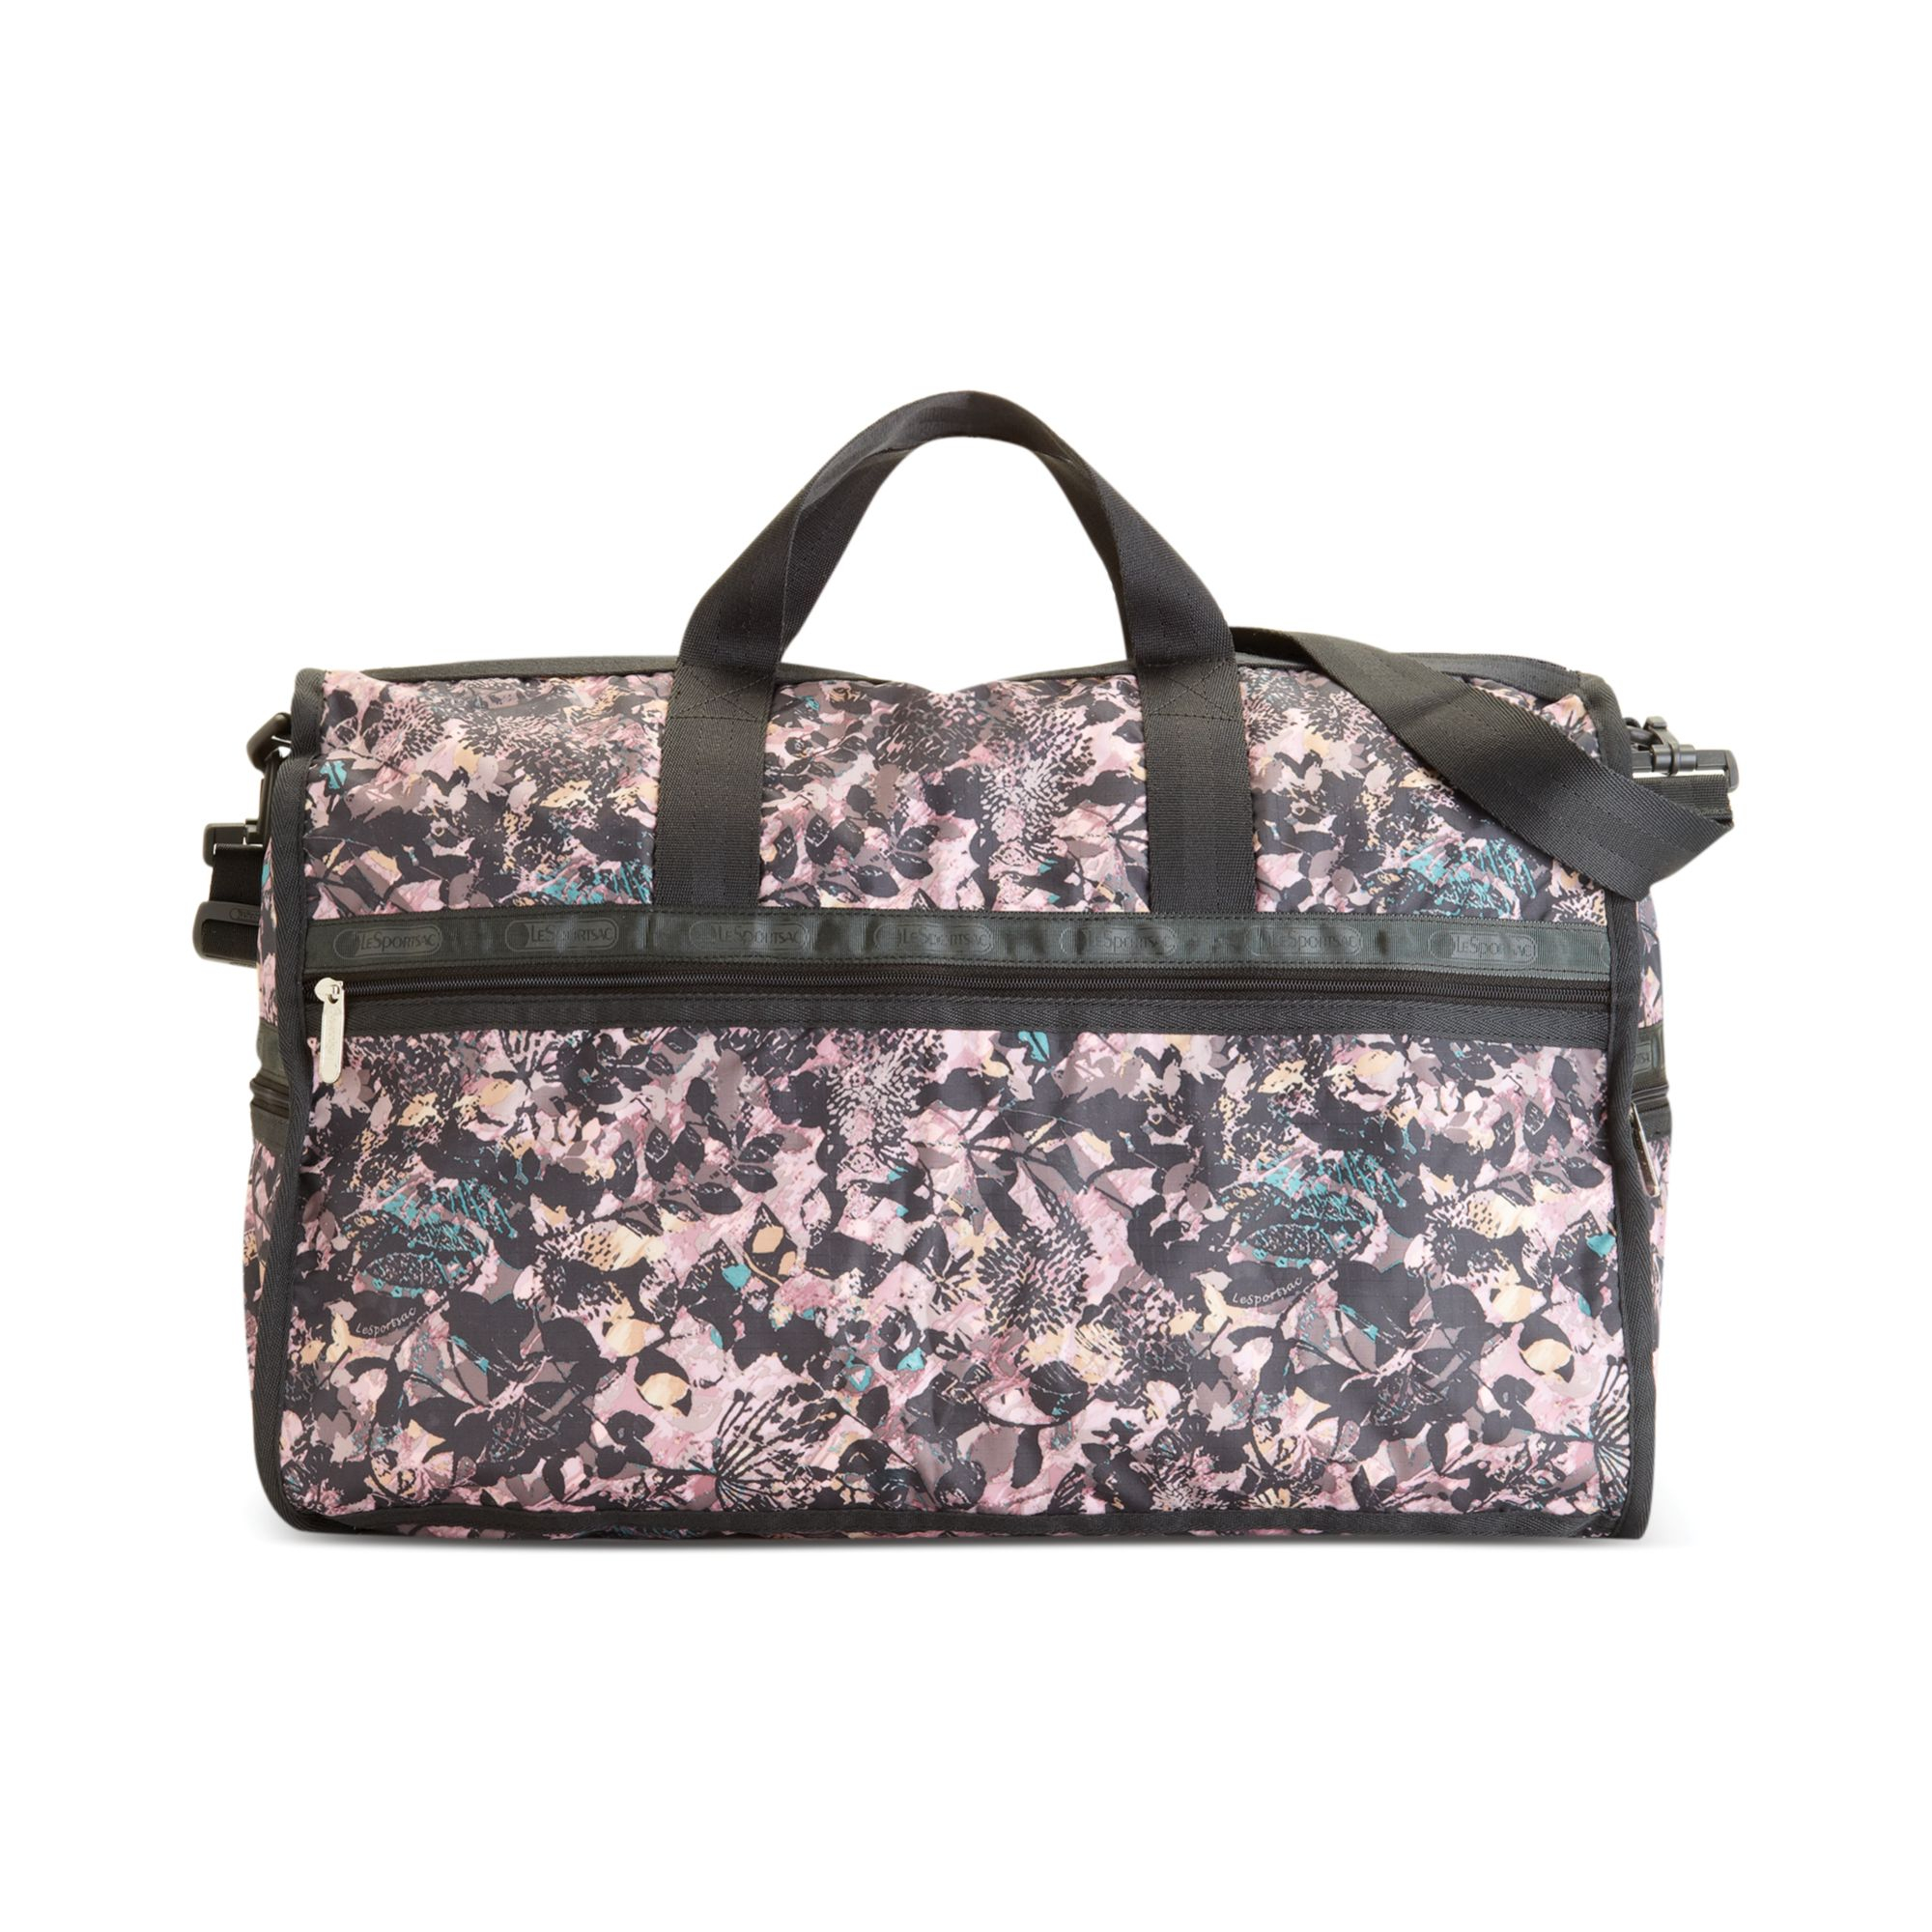 Lesportsac Large Weekender Bag in Purple